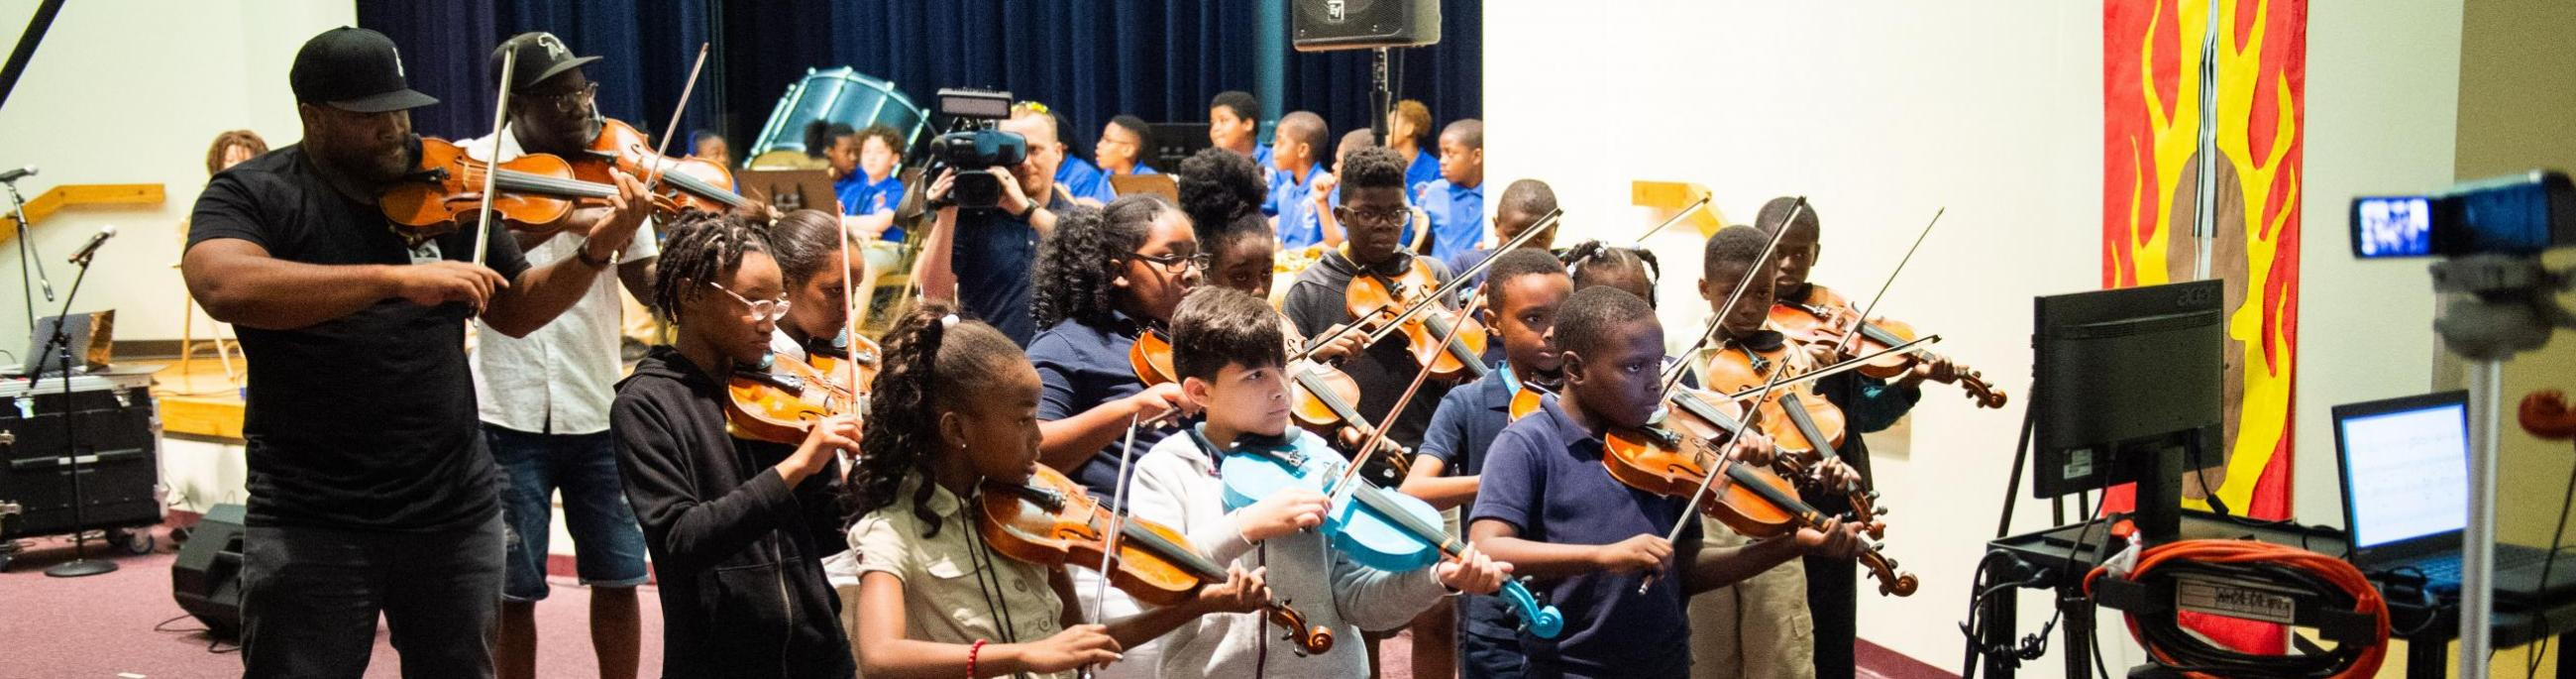 Theatre Kids presents a virtual field trip experience with Black Violin